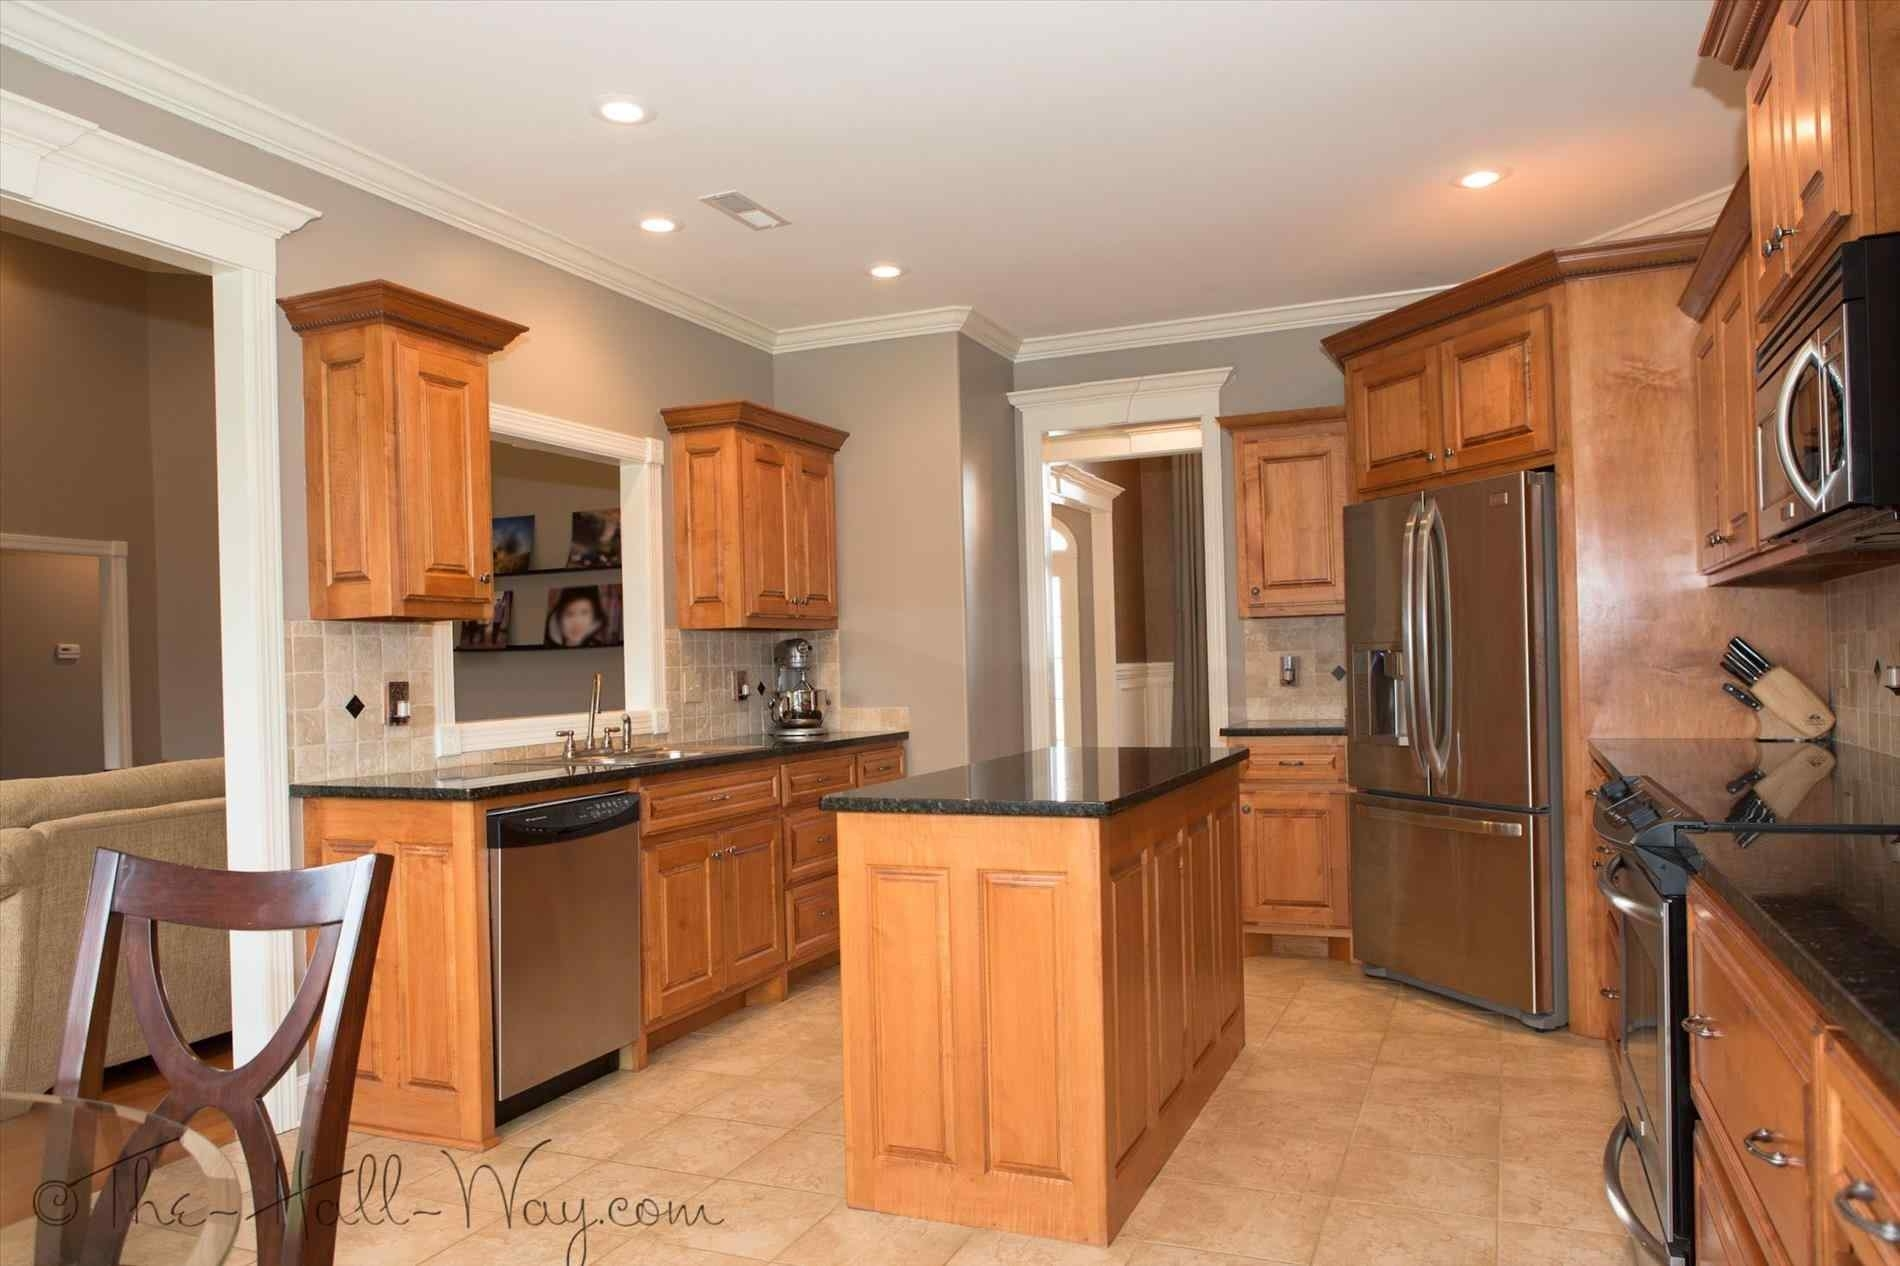 kitchen-colors-with-light-hickory-cabinets Paint With Dark Walnut Cabinets Kitchen Ideas on dark cabinet kitchen designs, dark walnut color kitchen cabinets, dark walnut floors in kitchen, dark maple kitchen cabinets, wood cabinets for kitchen backsplash ideas, dark walnut kitchen design,